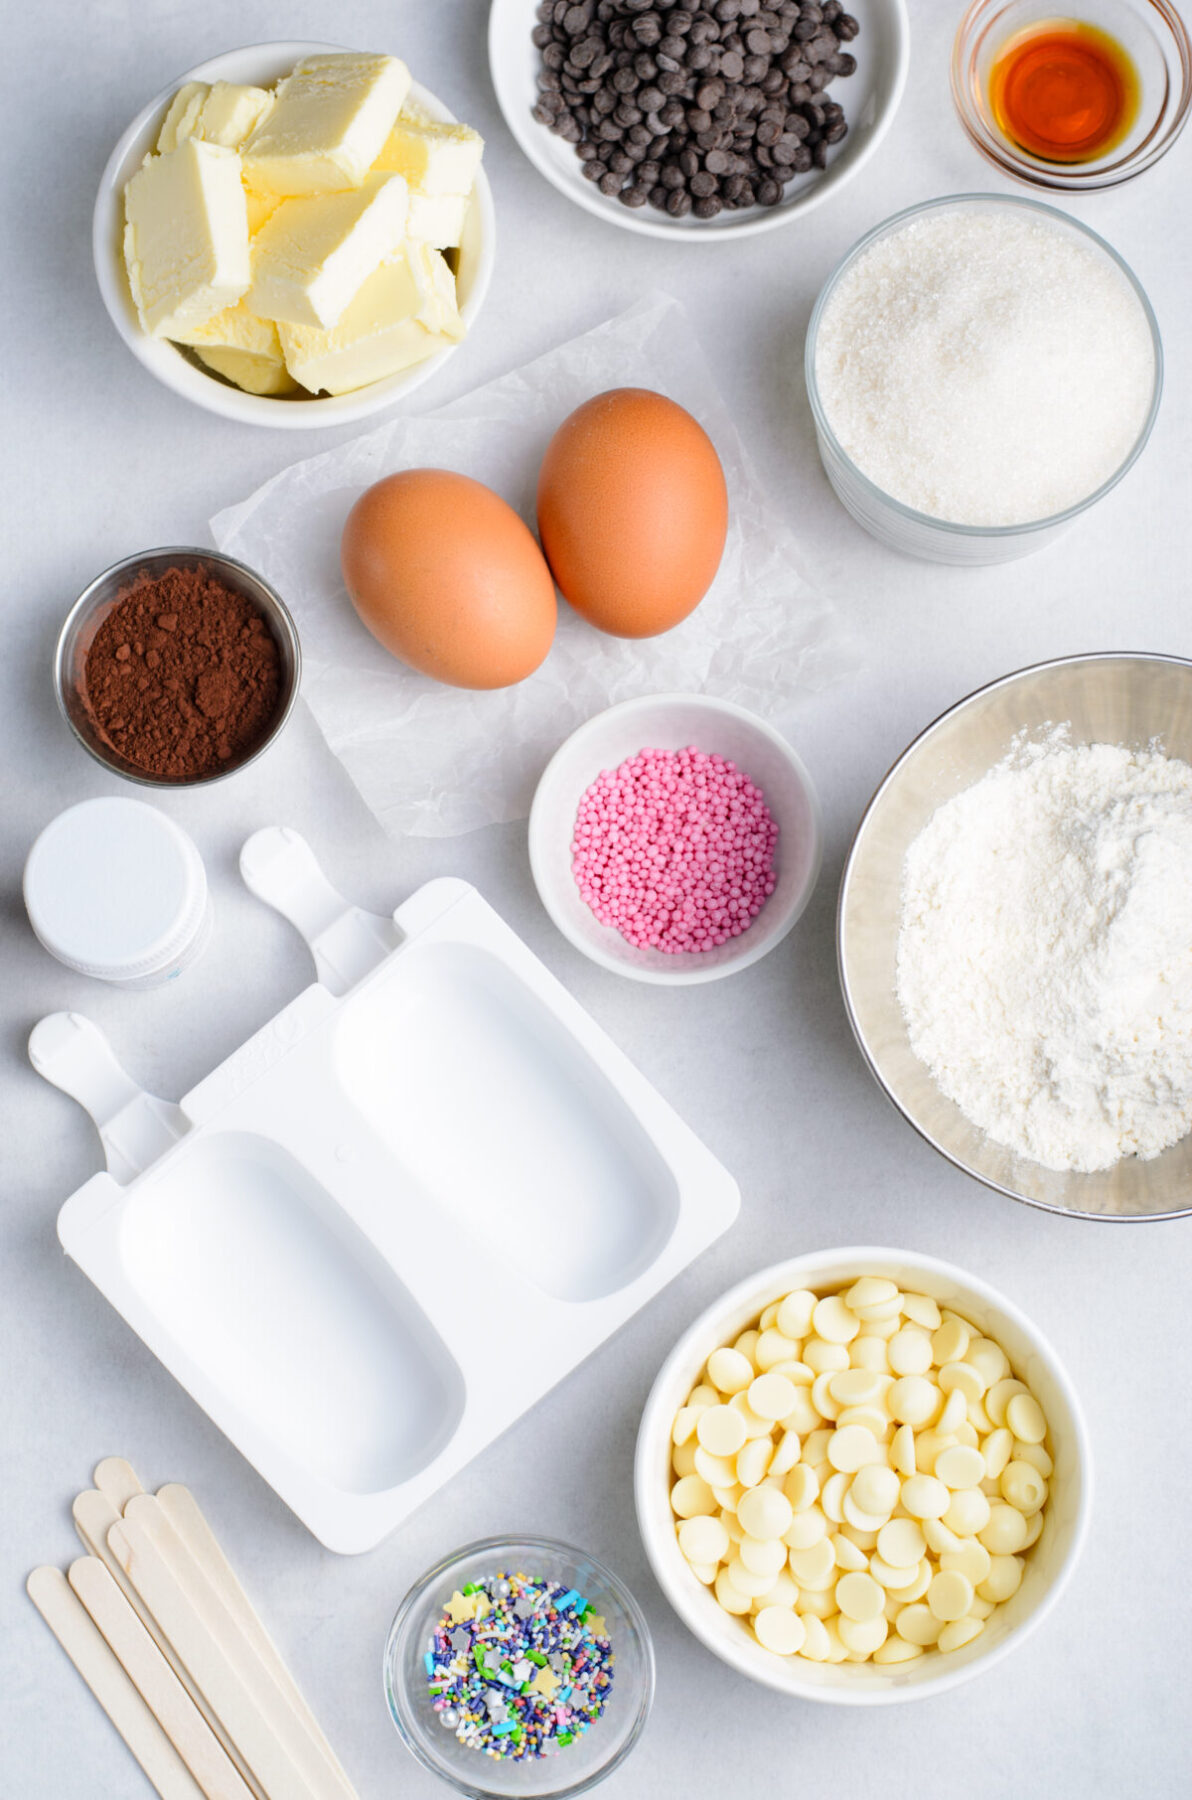 Ingredients for Cakesicles